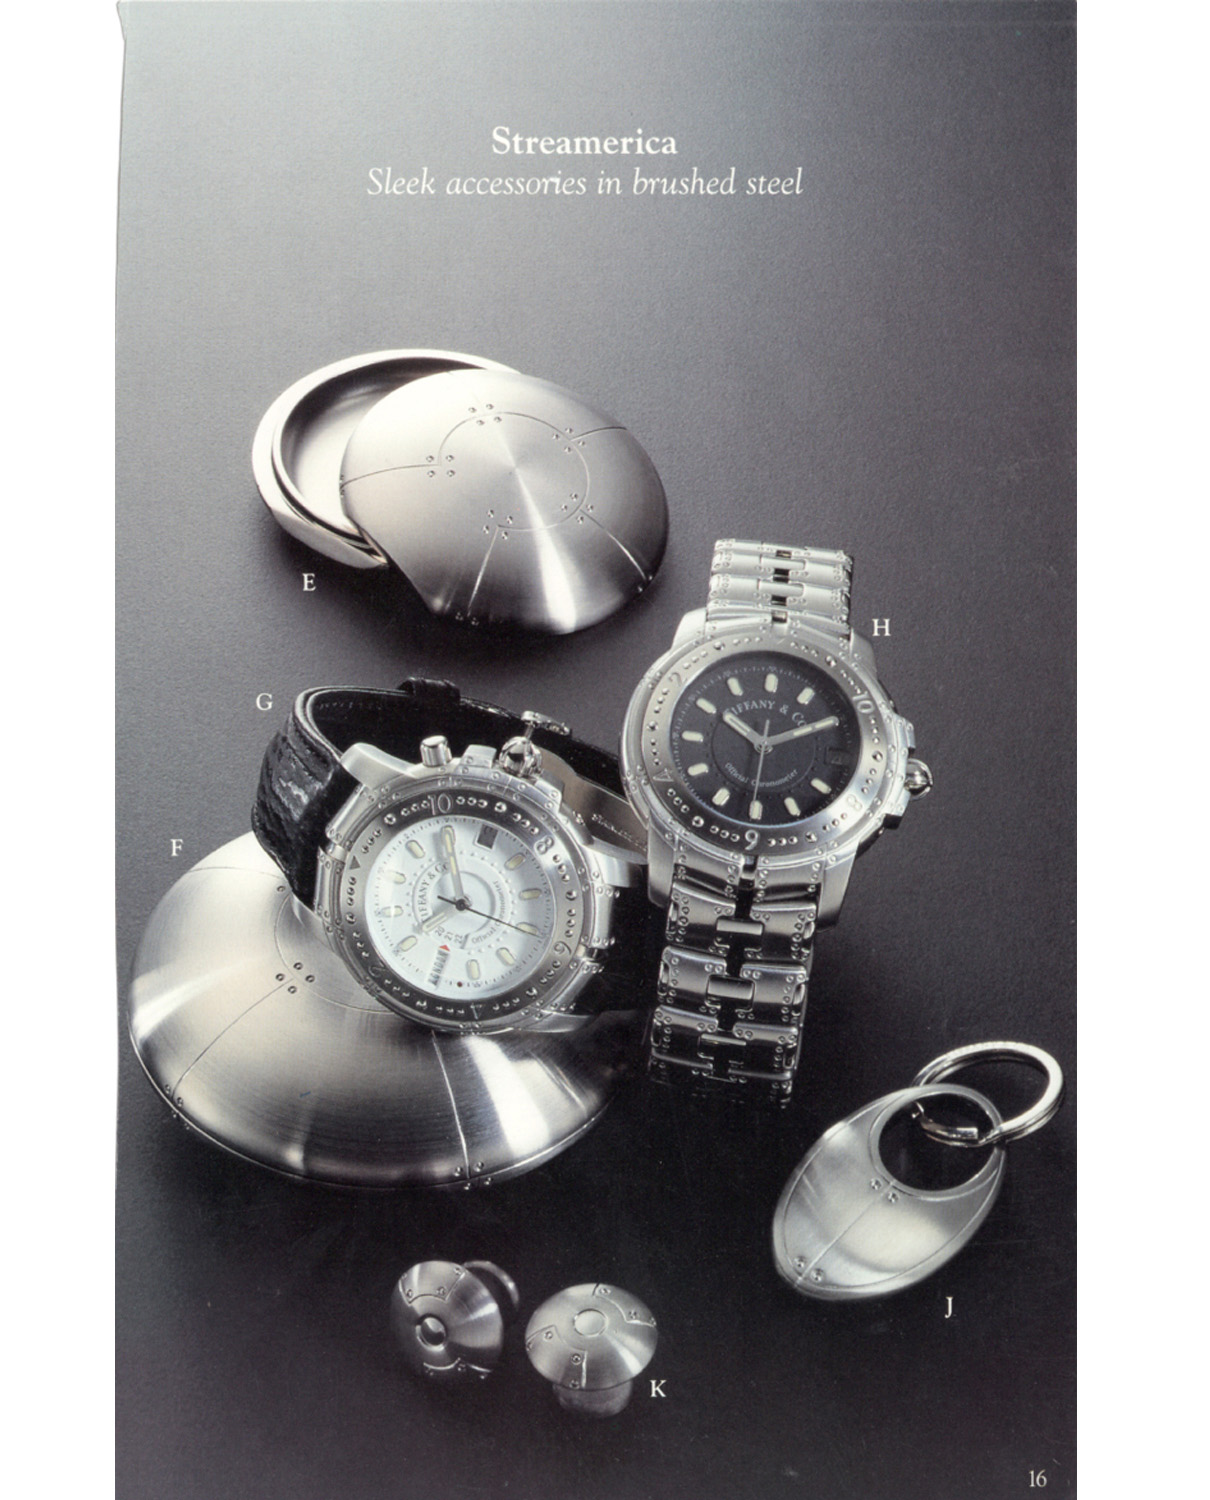 • Tiffany & Co. Blue Book Catalog 90's Sleek accessories in brushed steel Streamerica Perisphere Nesting Boxes, World Timer Automatic Watch Chronometer, geodome cufflinks, Curviline key ring.